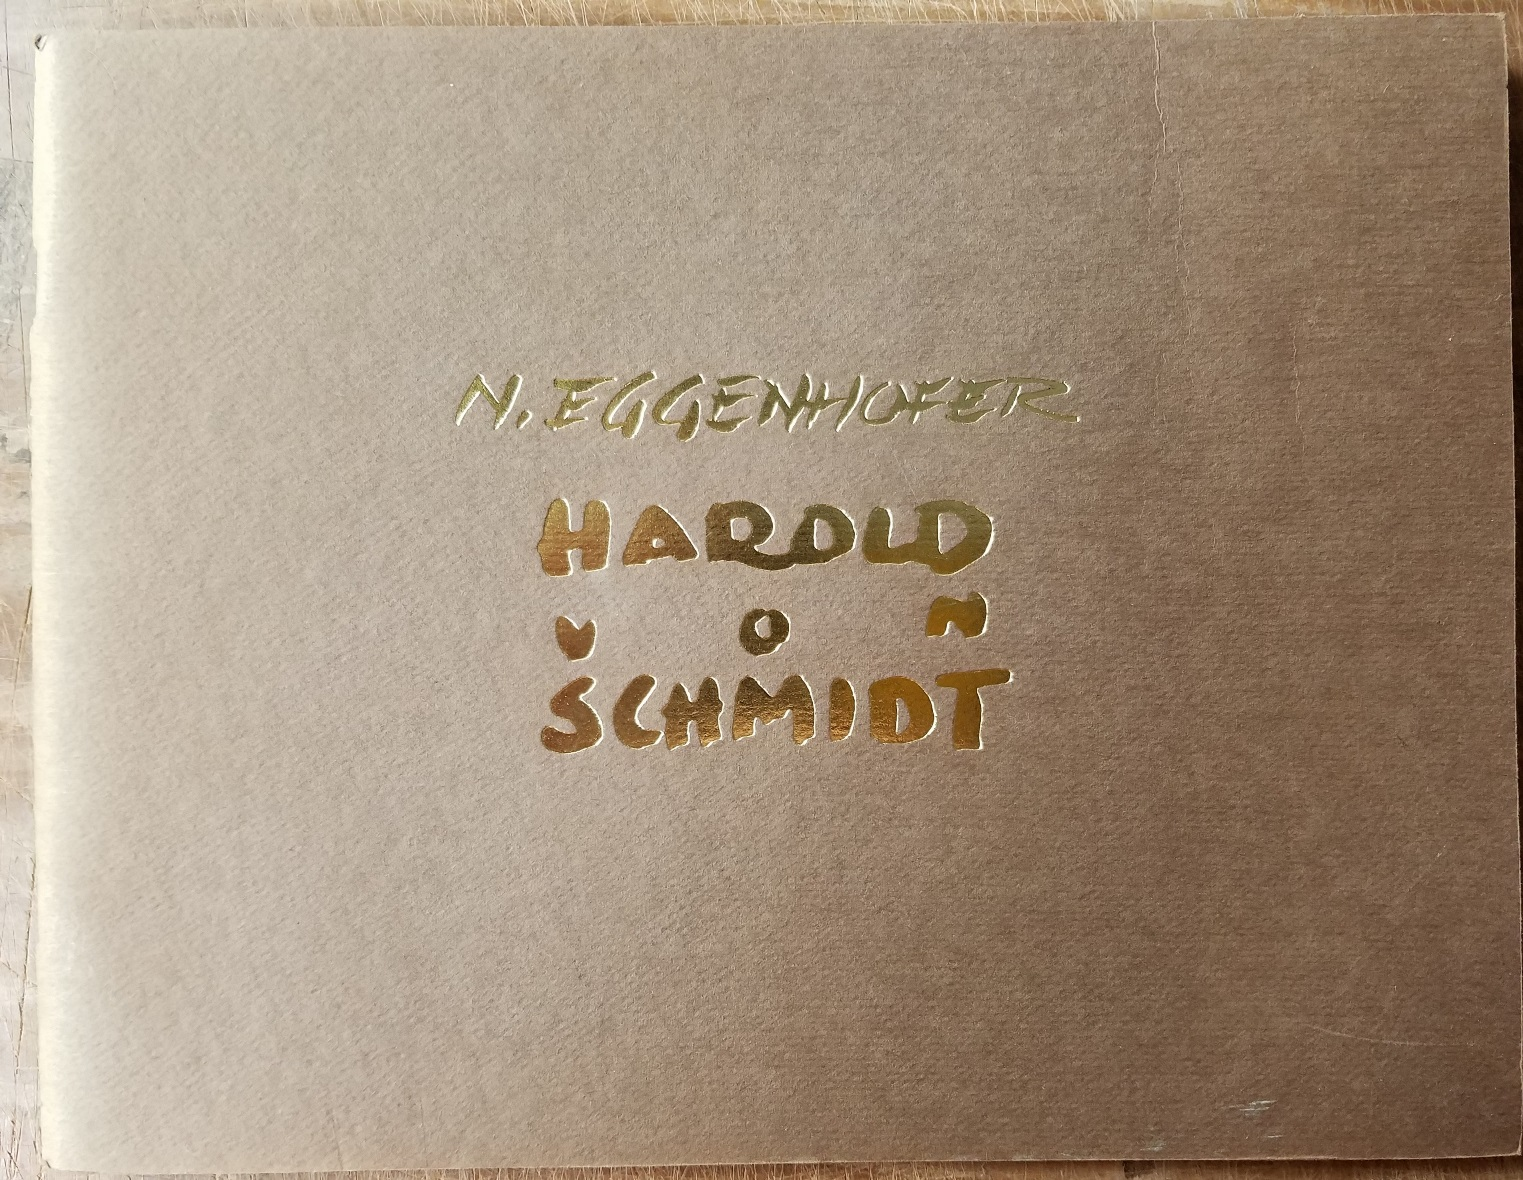 REED, WALT - N. Eggenhofer / Harold Von Schmidt: A Retrospective Exhibition; with Biographical Sketches of the Artists by Walt Reed